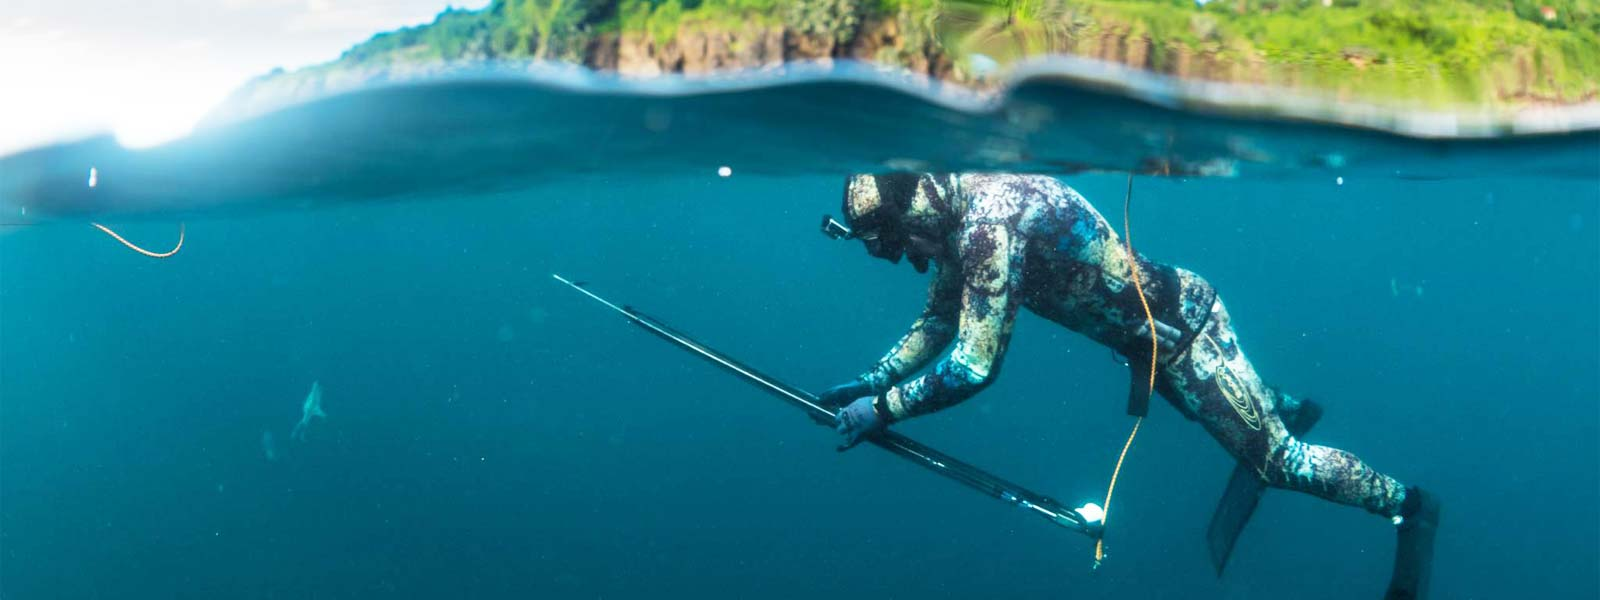 Spearfishing Starter Packs